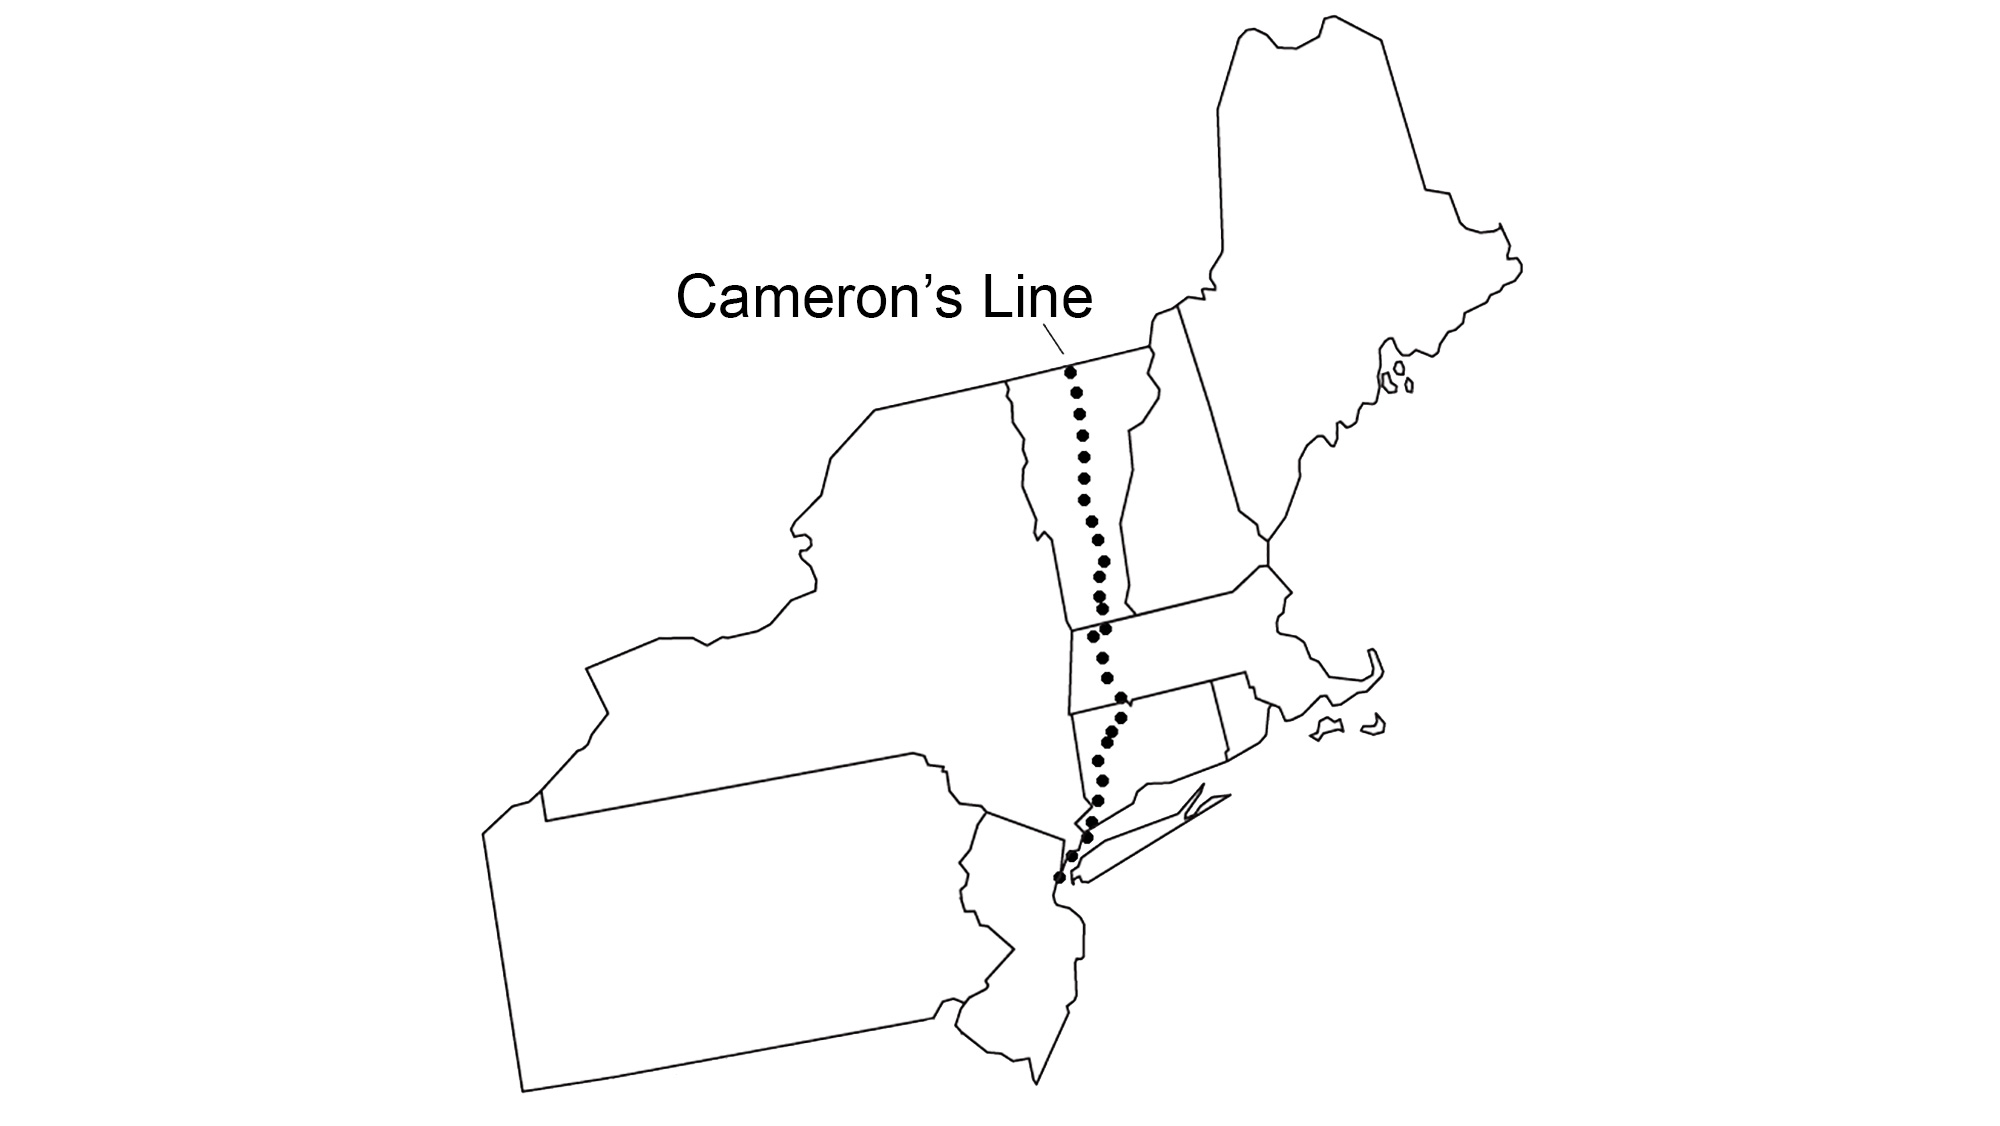 Map of the northeastern U.S. showing the position of Cameron's Line.